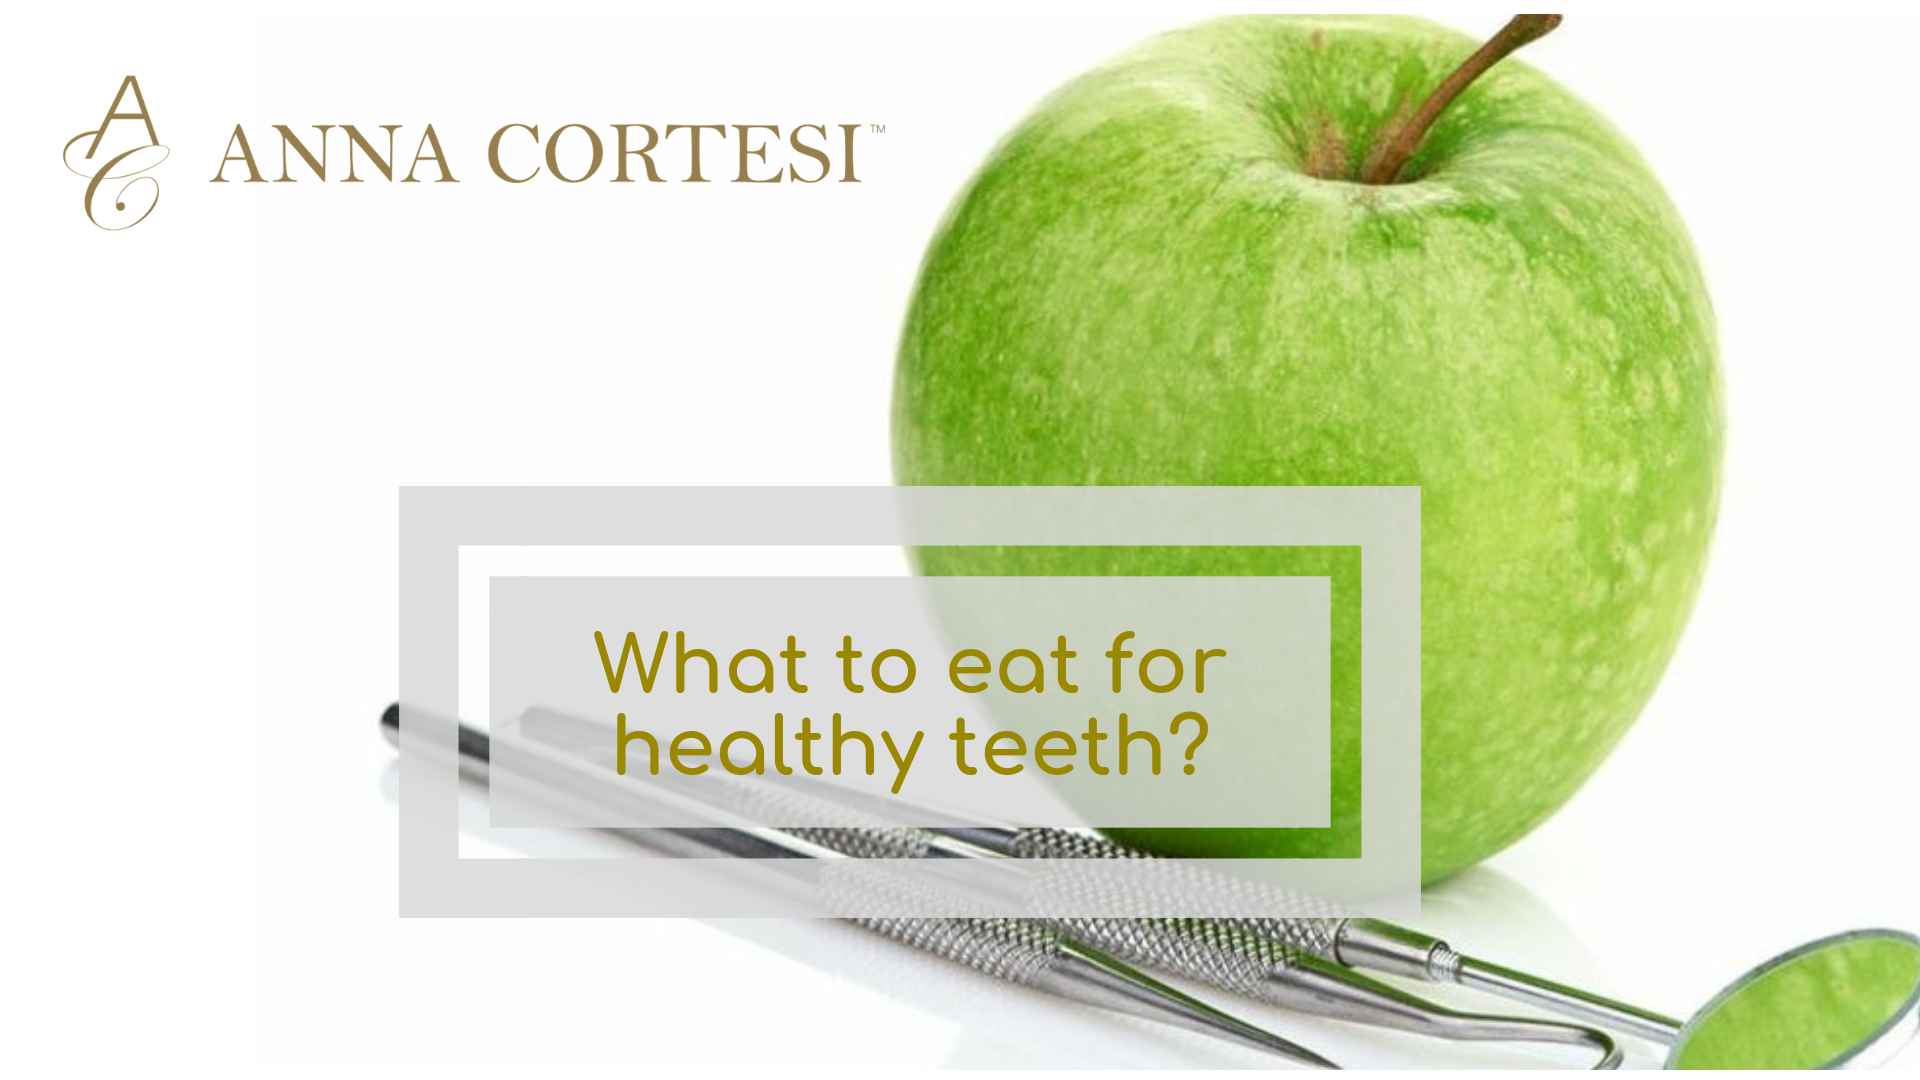 What to eat for healthy teeth?